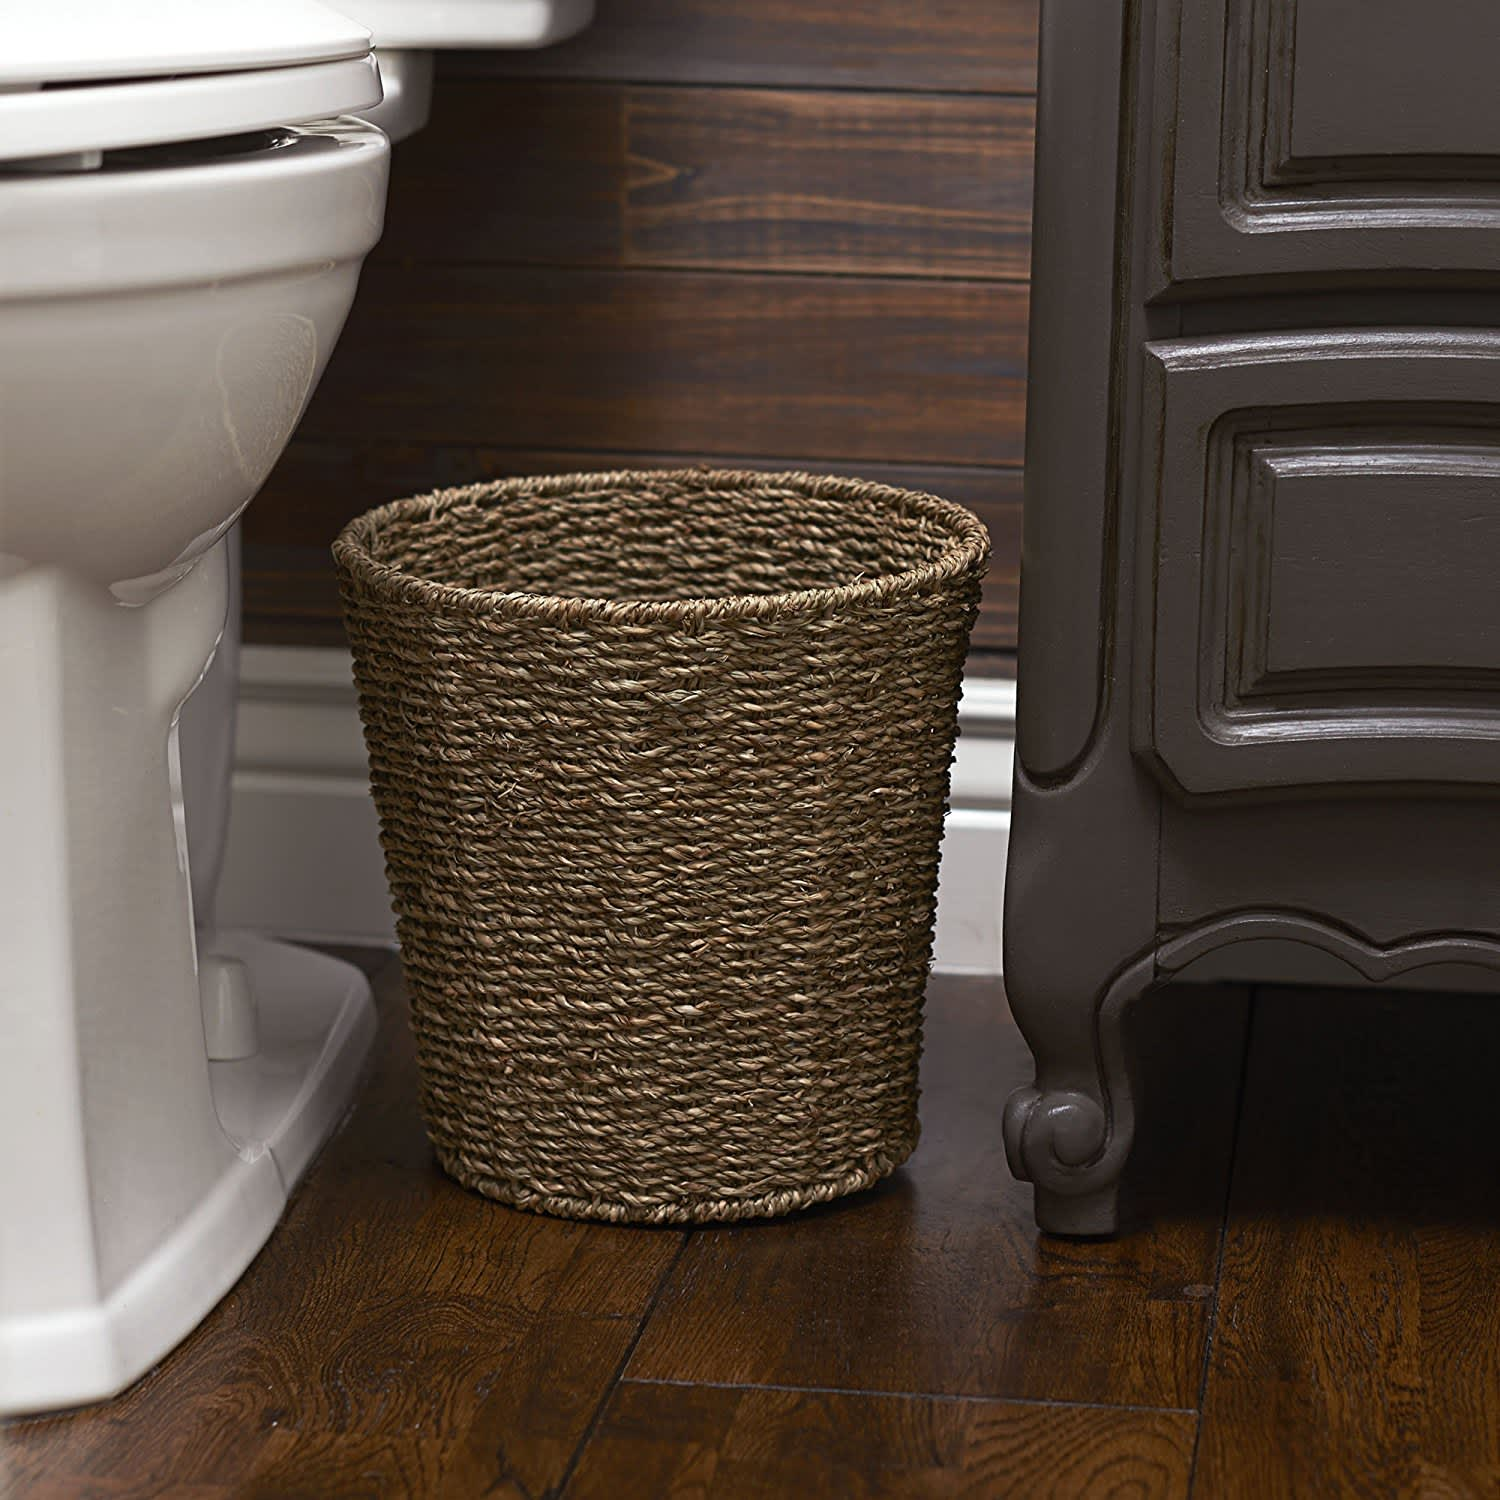 The Best Looking Bathroom Trash Cans Under 15 Apartment